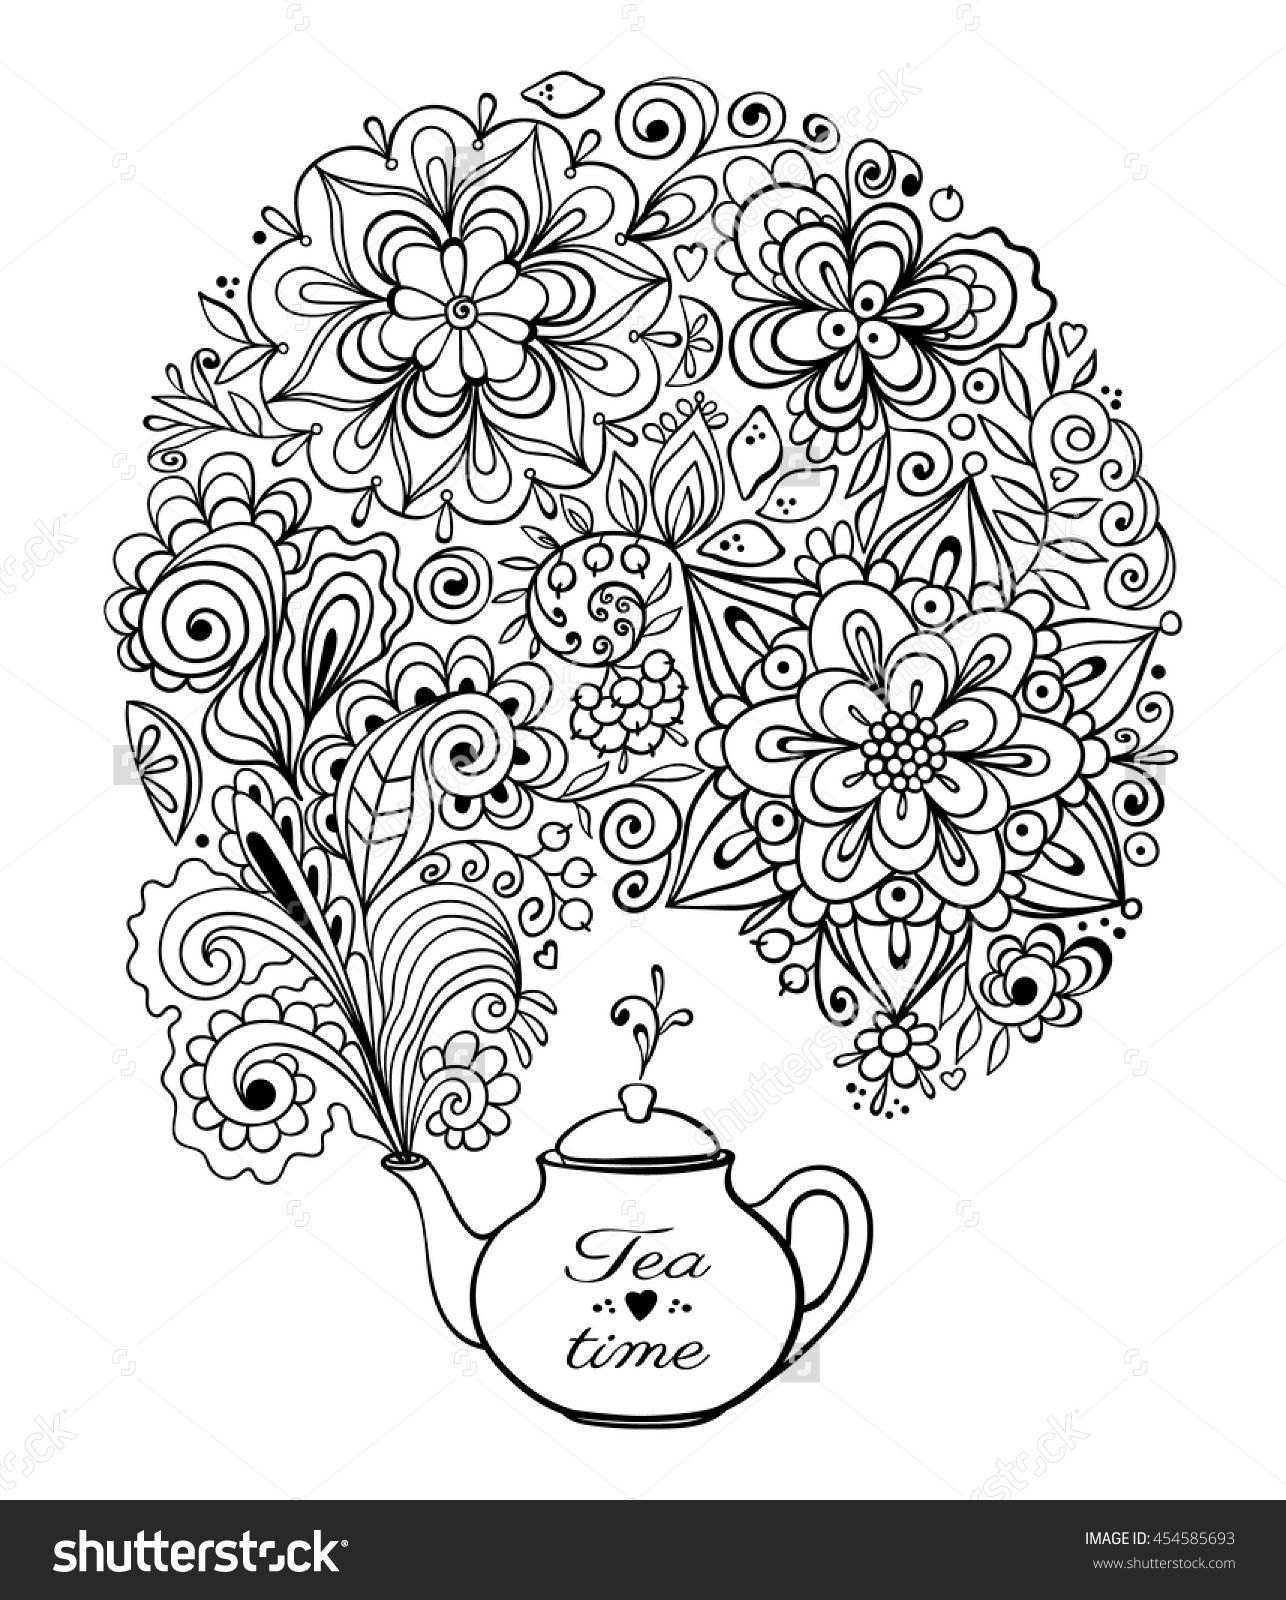 Colour book for adults - Tea Time Card Teapot With Doodle Floral Smoke Coloring Book Page 454585693 Shutterstock